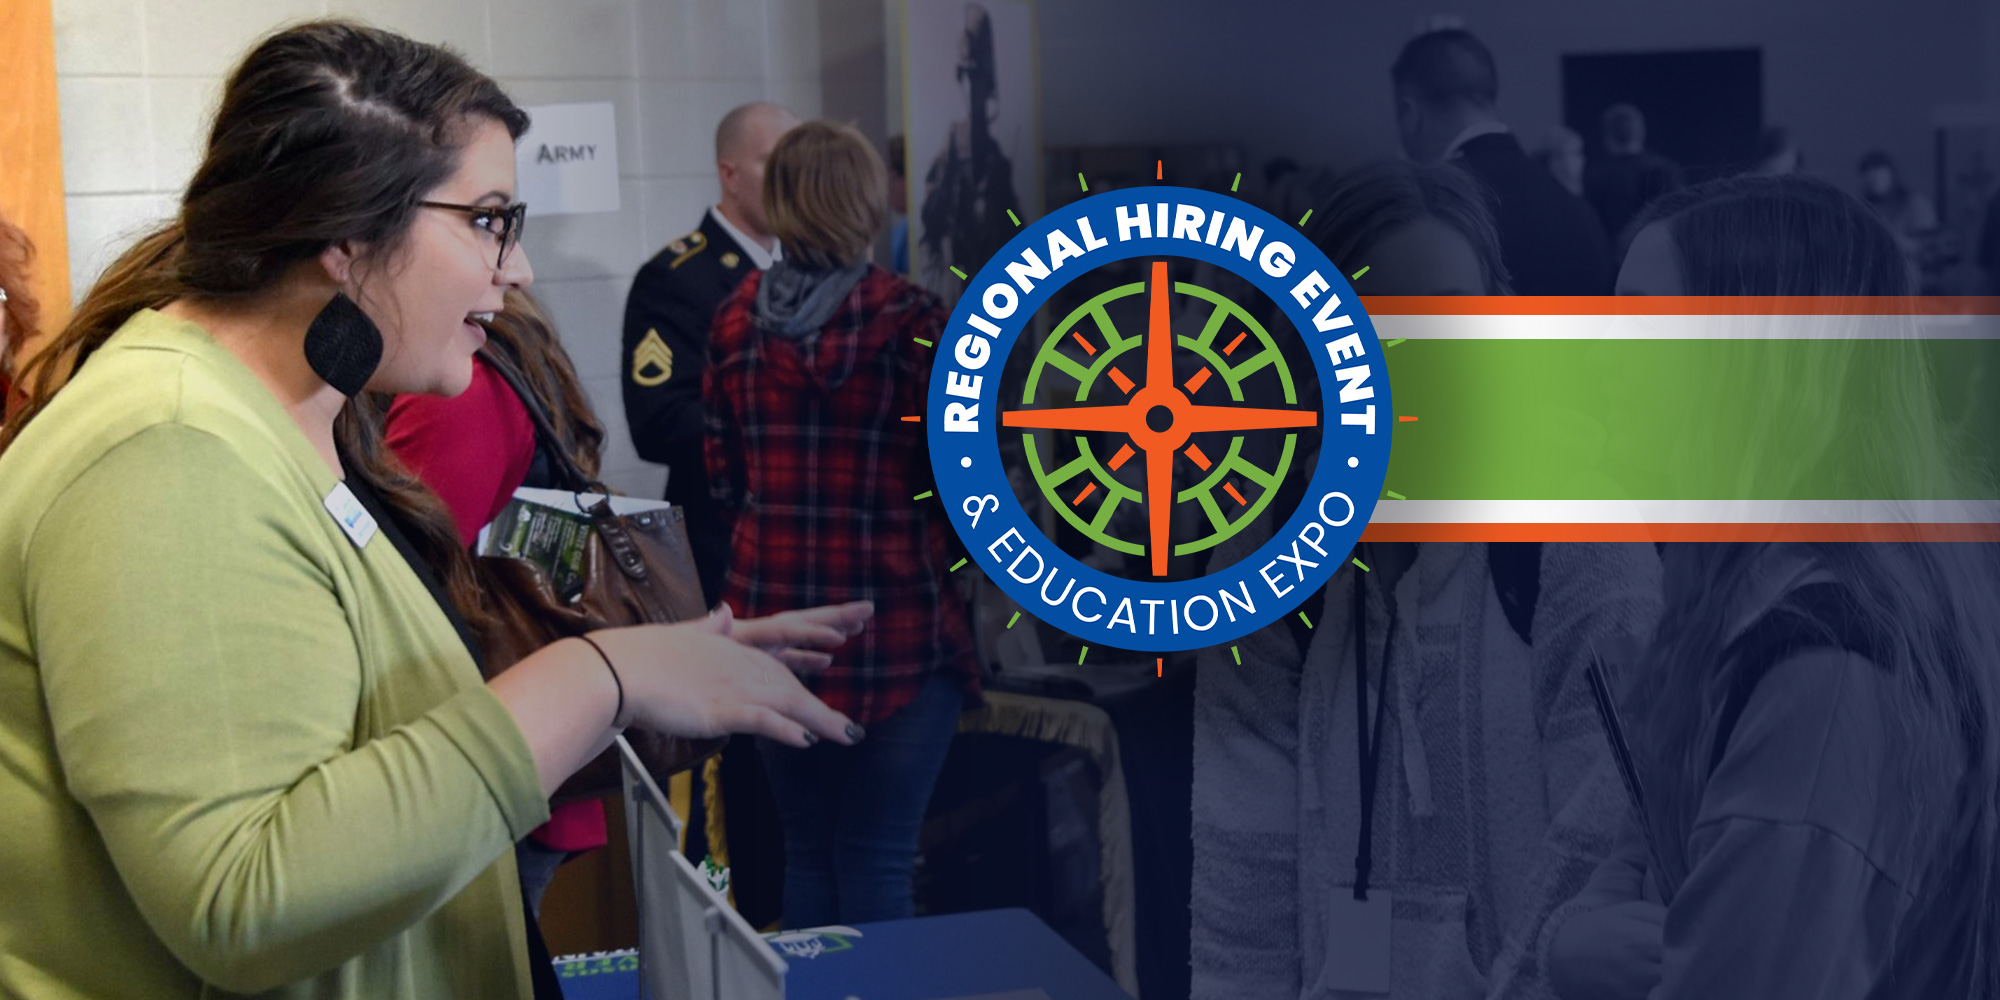 Hiring Event & Education Expo Thursday, June 10 at ASUMH